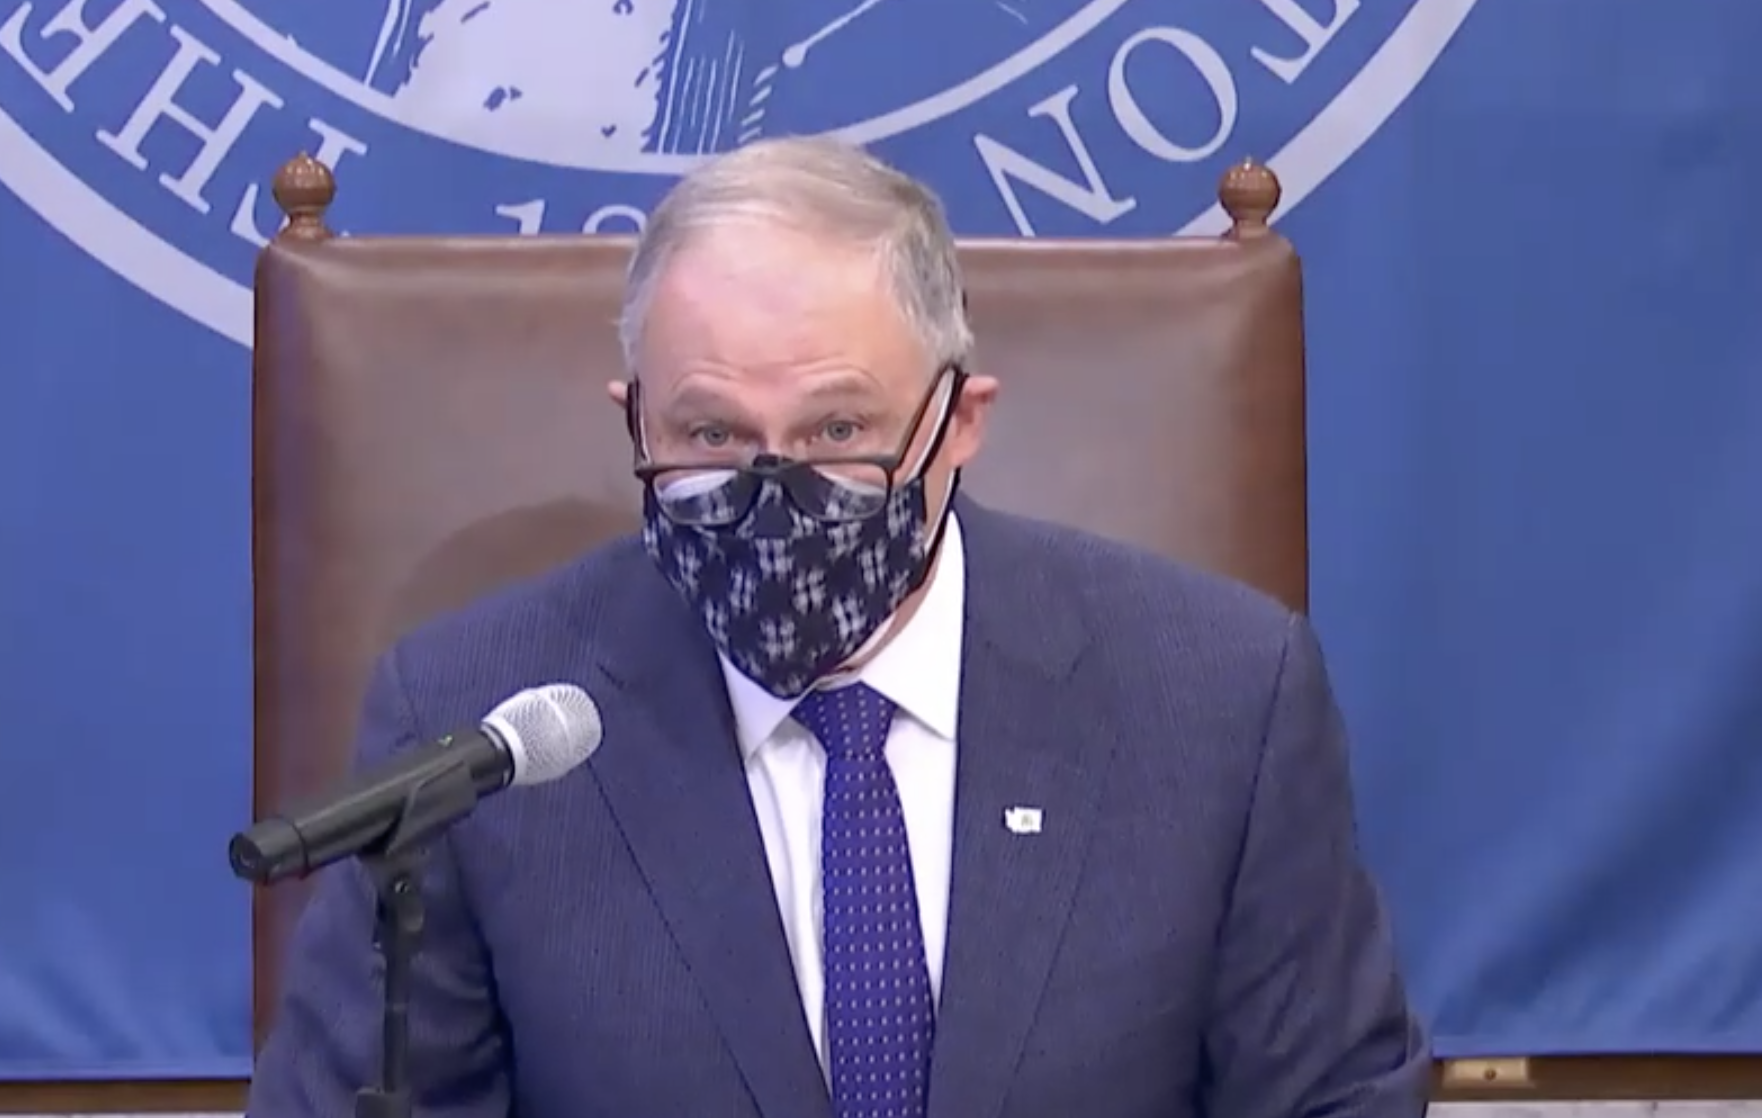 Gov. Jay Inslee at a press conference wearing a face mask, a blue suit, and glasses